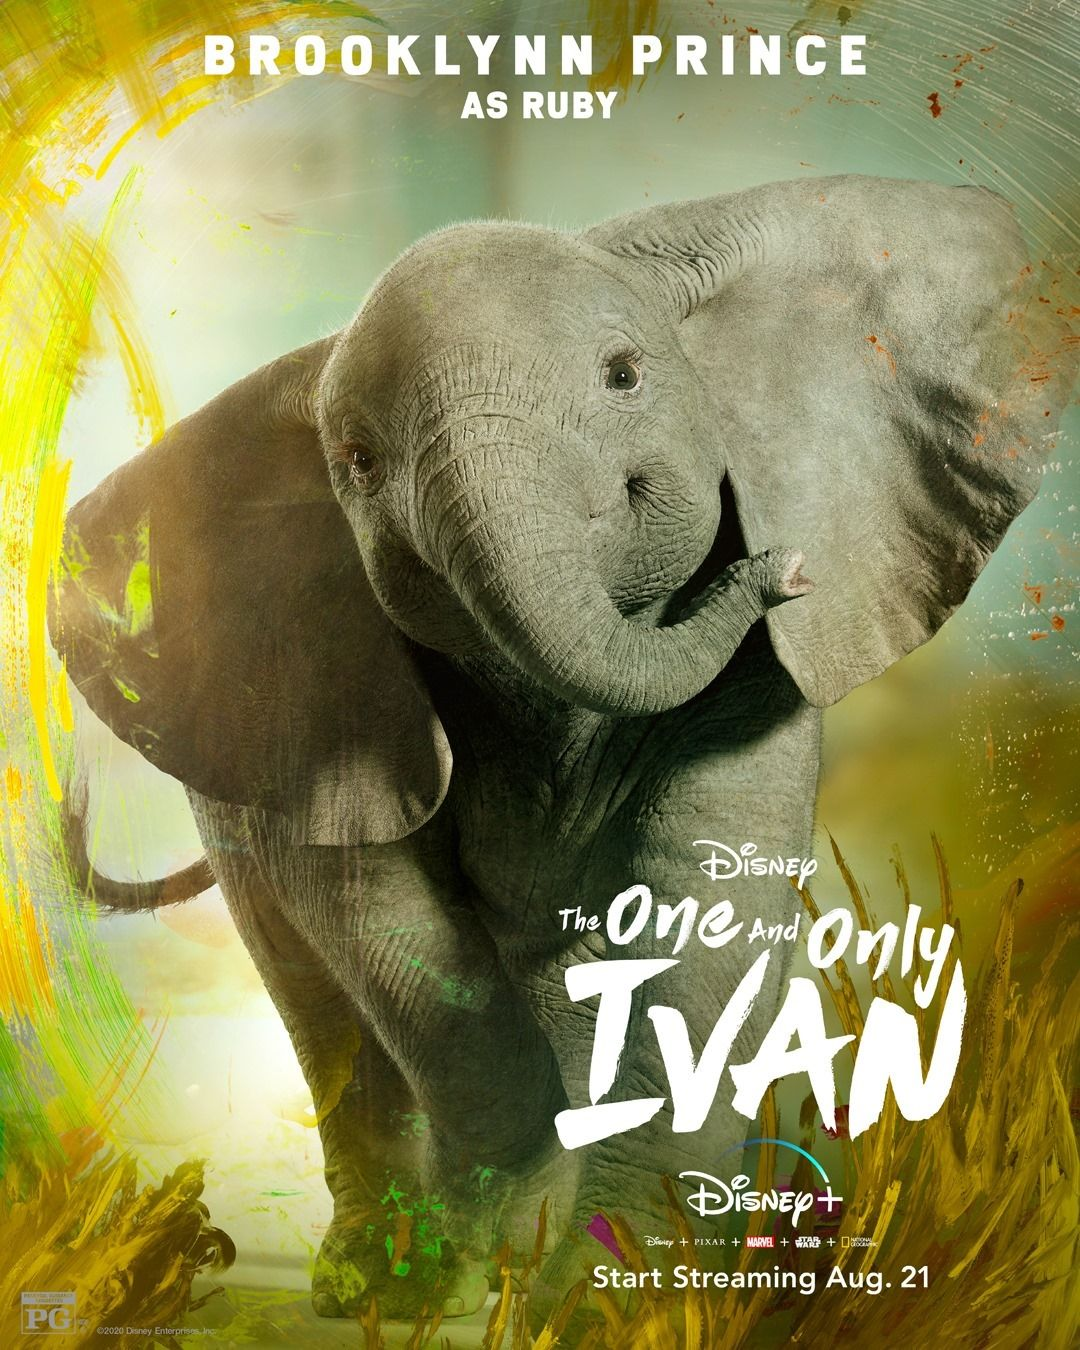 The One and Only Ivan Poster 10: Full Size Poster Image